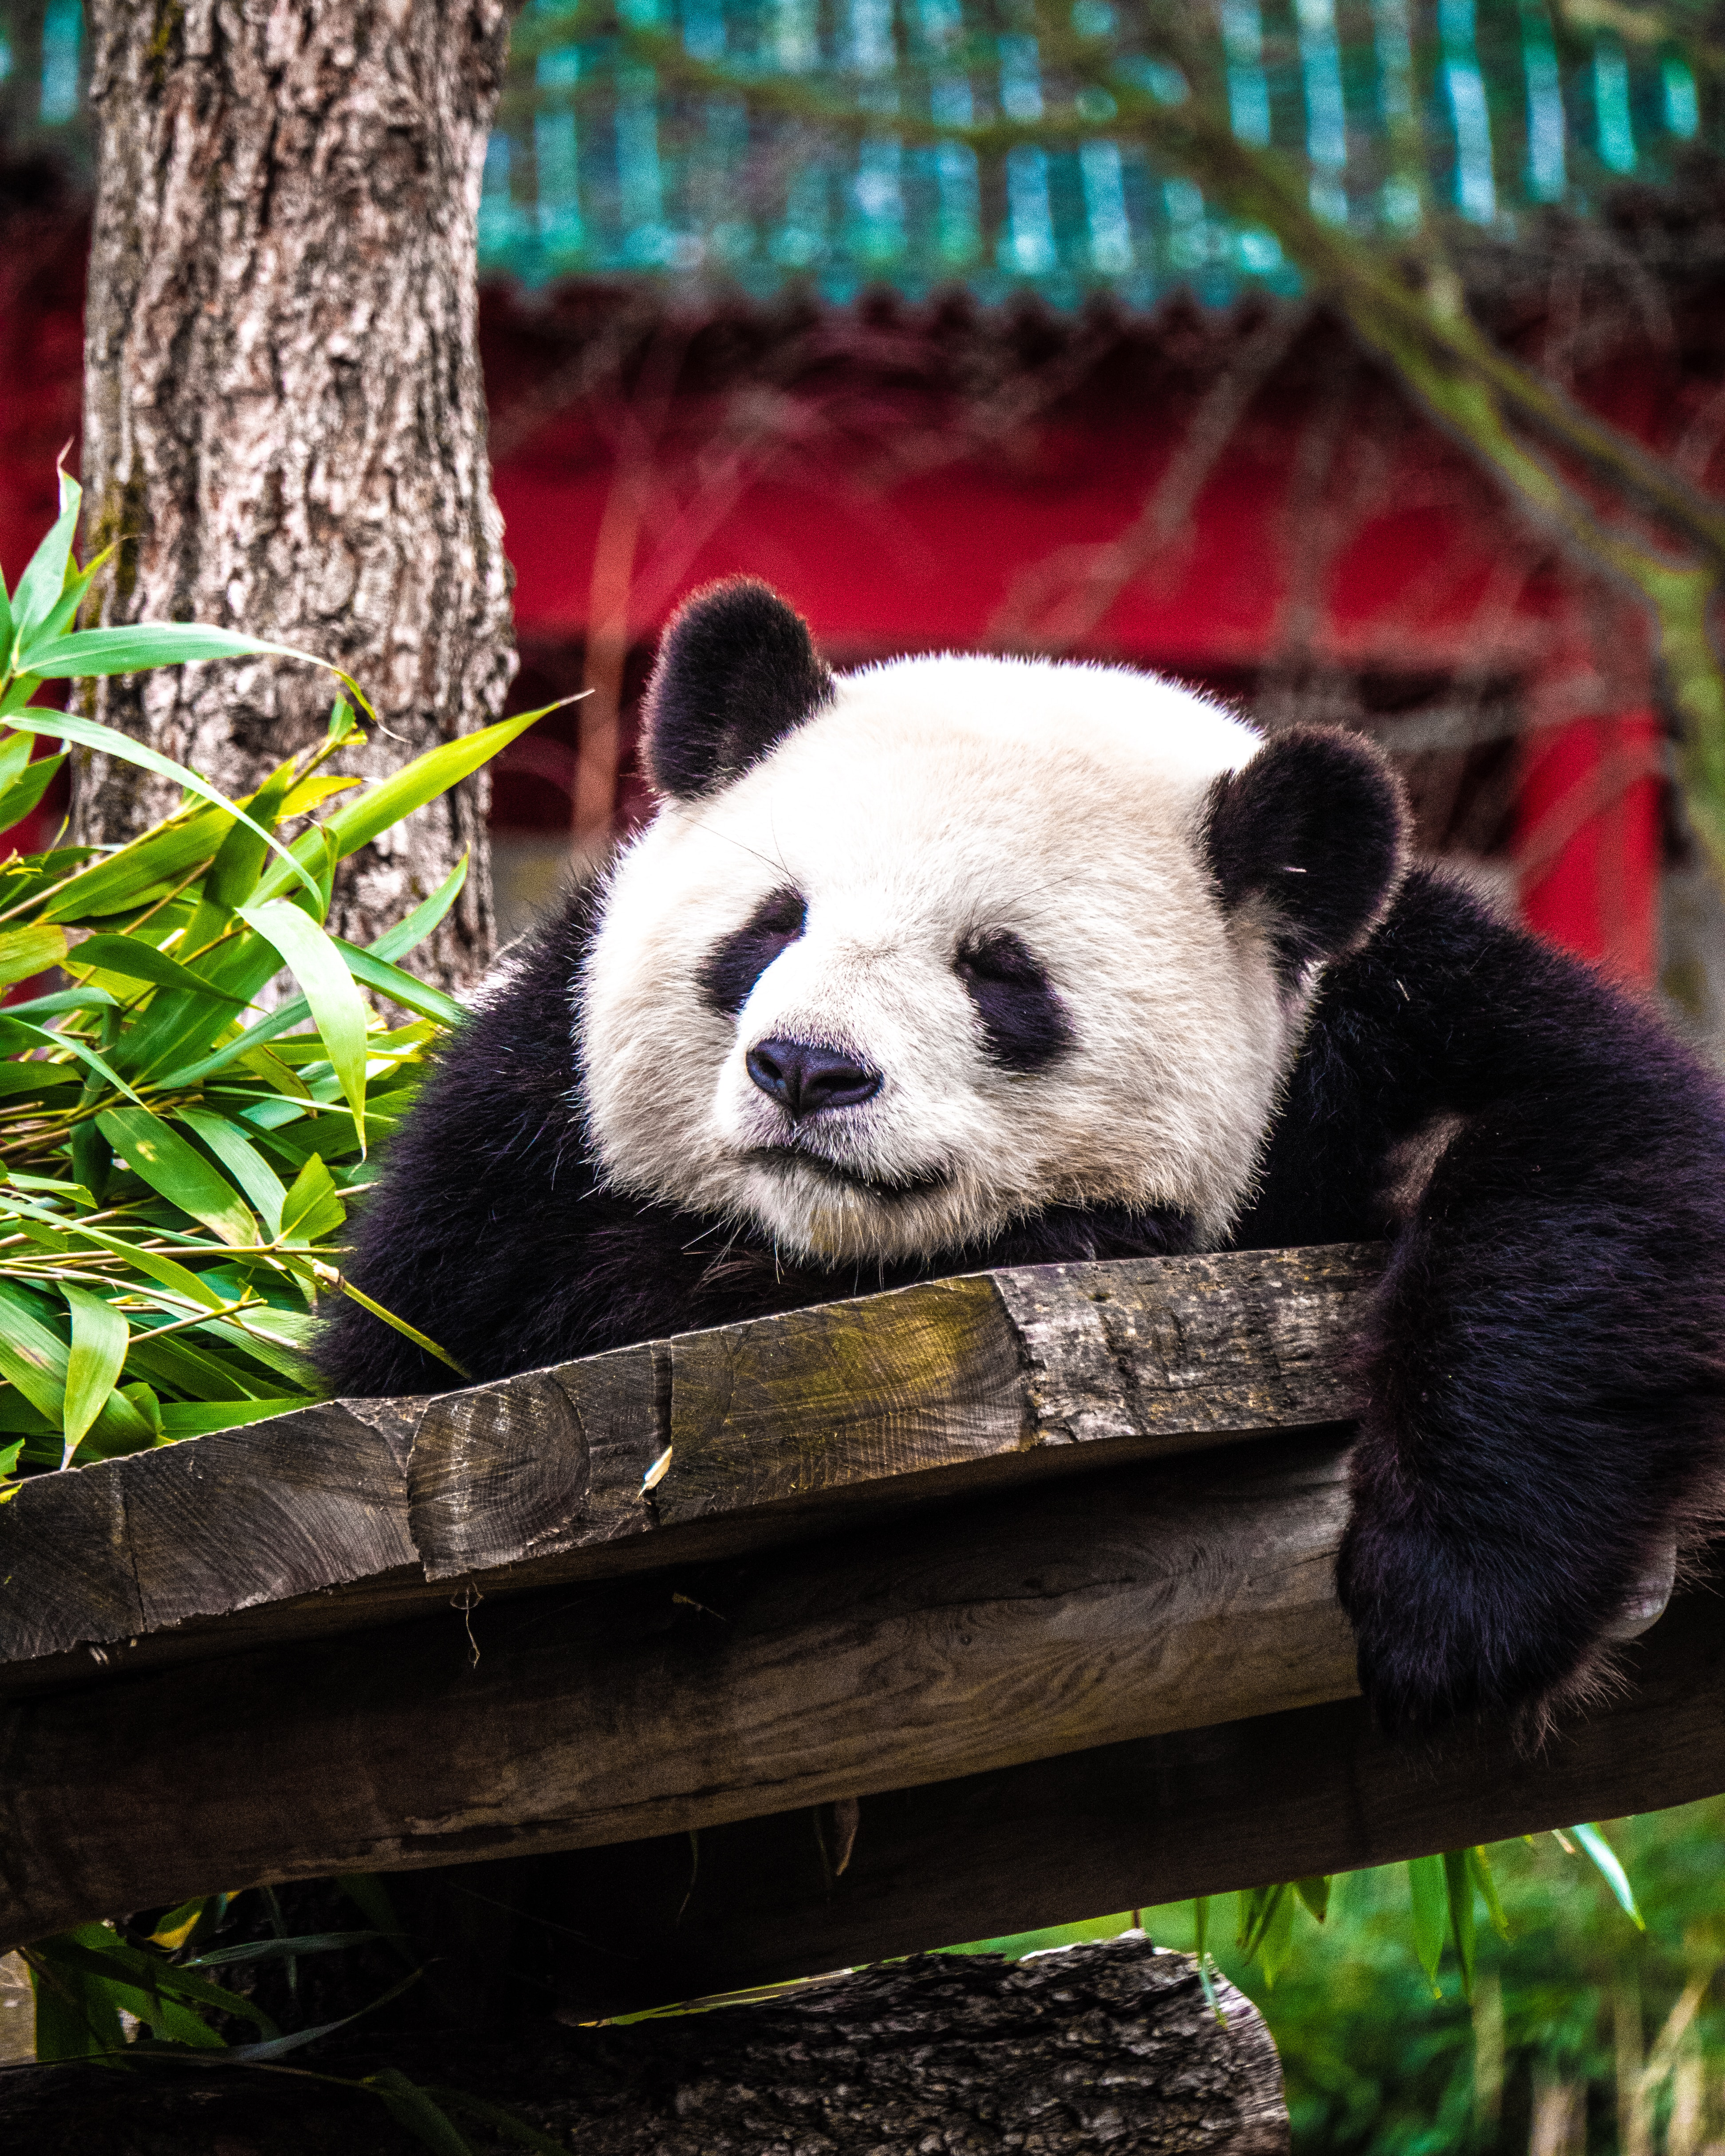 145404 download wallpaper Animals, Panda, Sleep, Dream, Nice, Sweetheart, Animal screensavers and pictures for free